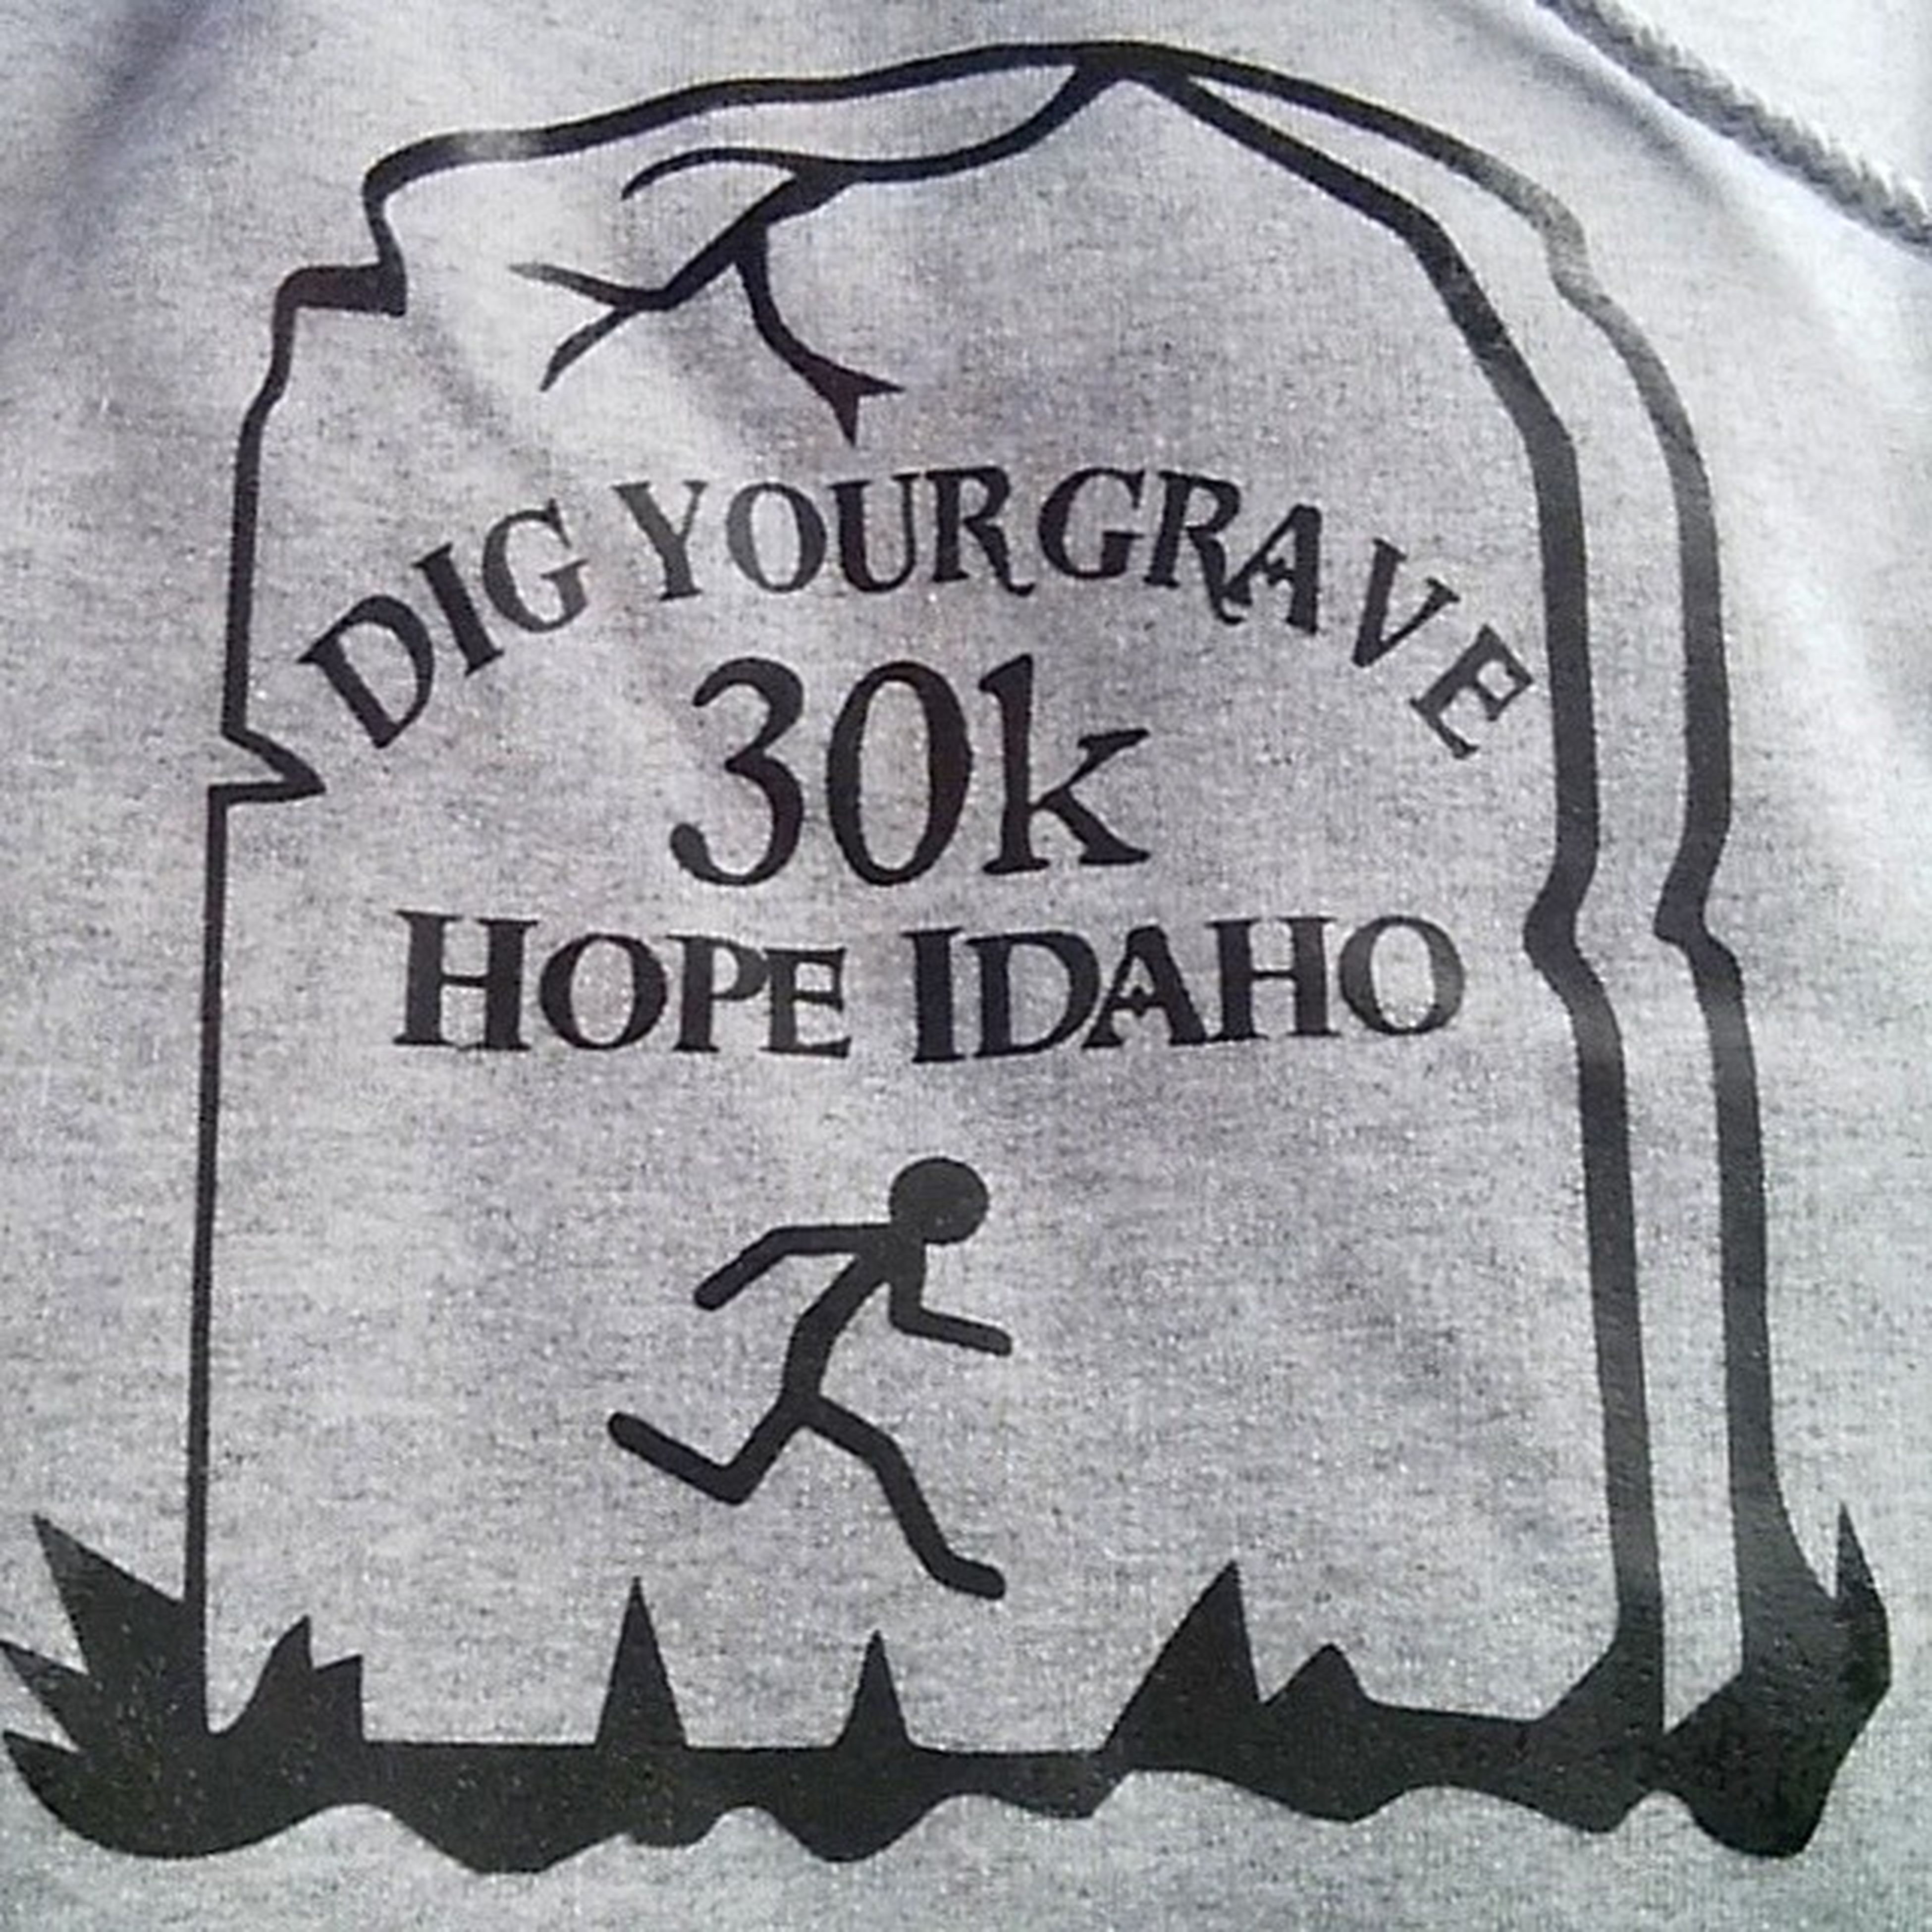 6th place 3hr 40min 12sec 30k/18miles 4700 vertical feet DigYourOwnGrave Run Trailrunning done!! RacerNumber283